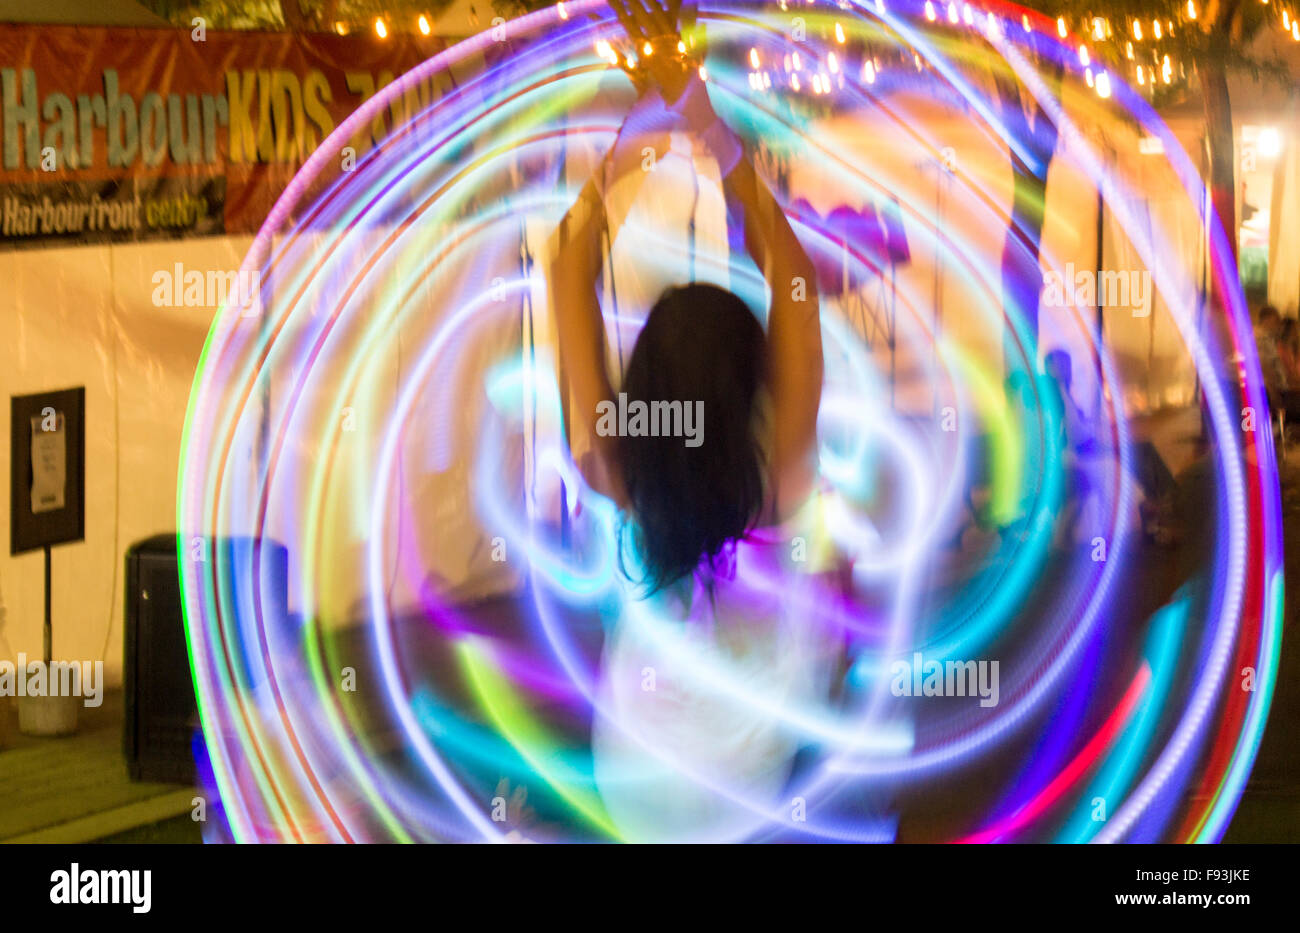 woman-spinning-rainbow-hula-hoops-at-world-pride-party-in-toronto-F93JKE.jpg